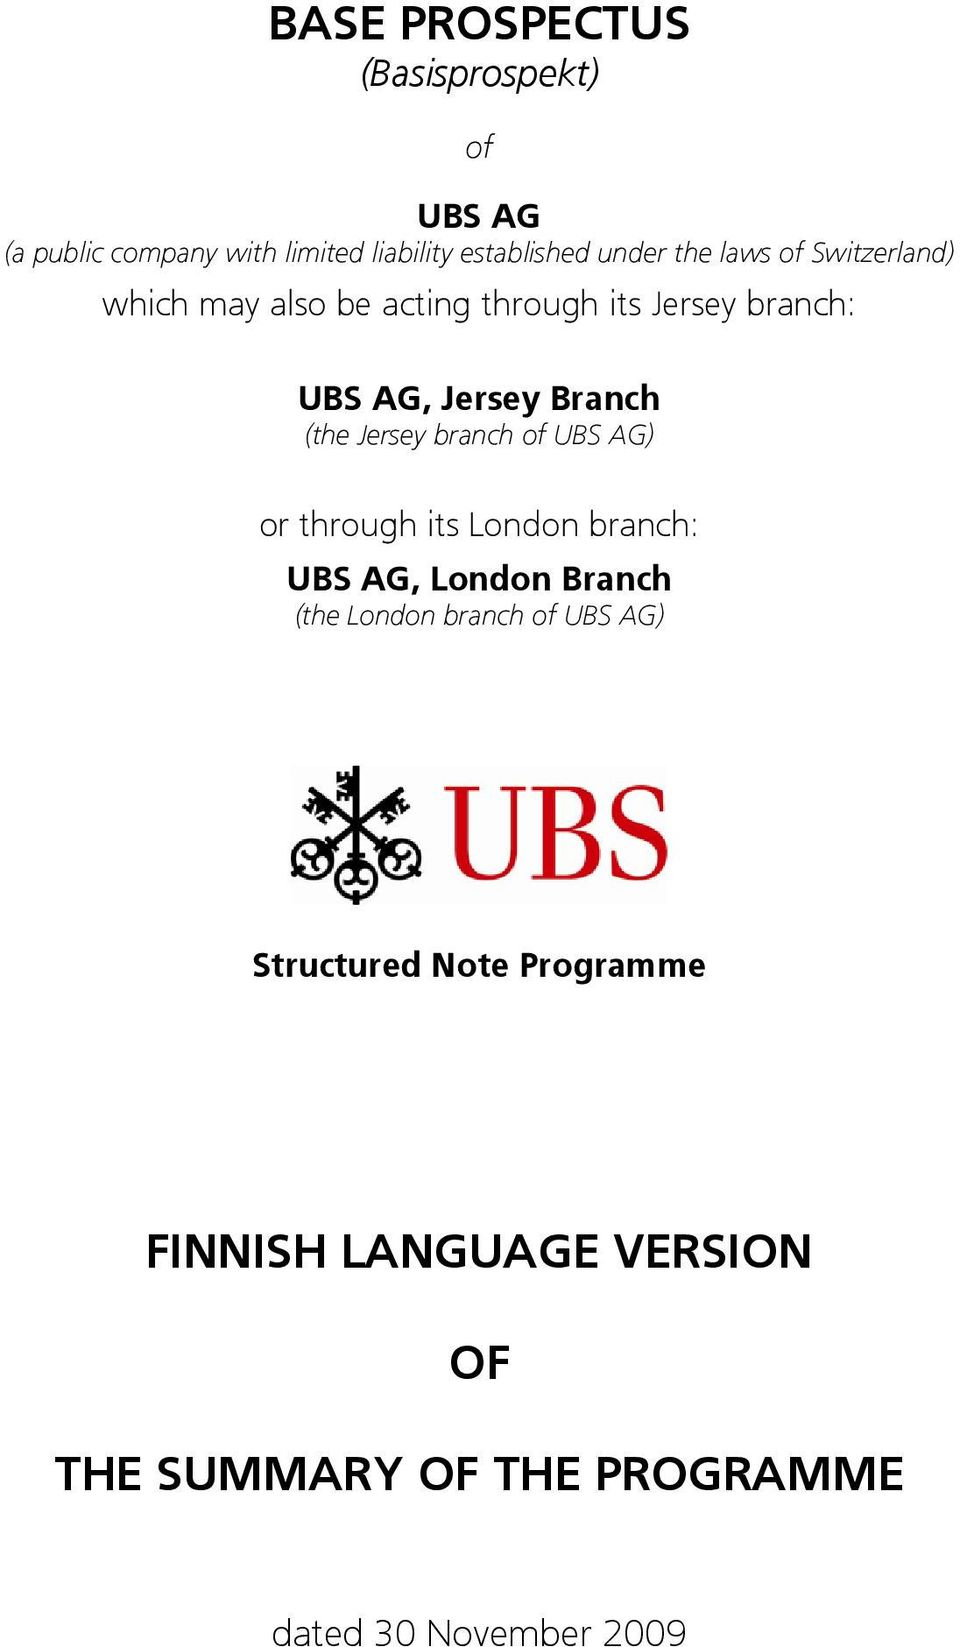 Jersey branch of UBS AG) or through its London branch: UBS AG, London Branch (the London branch of UBS